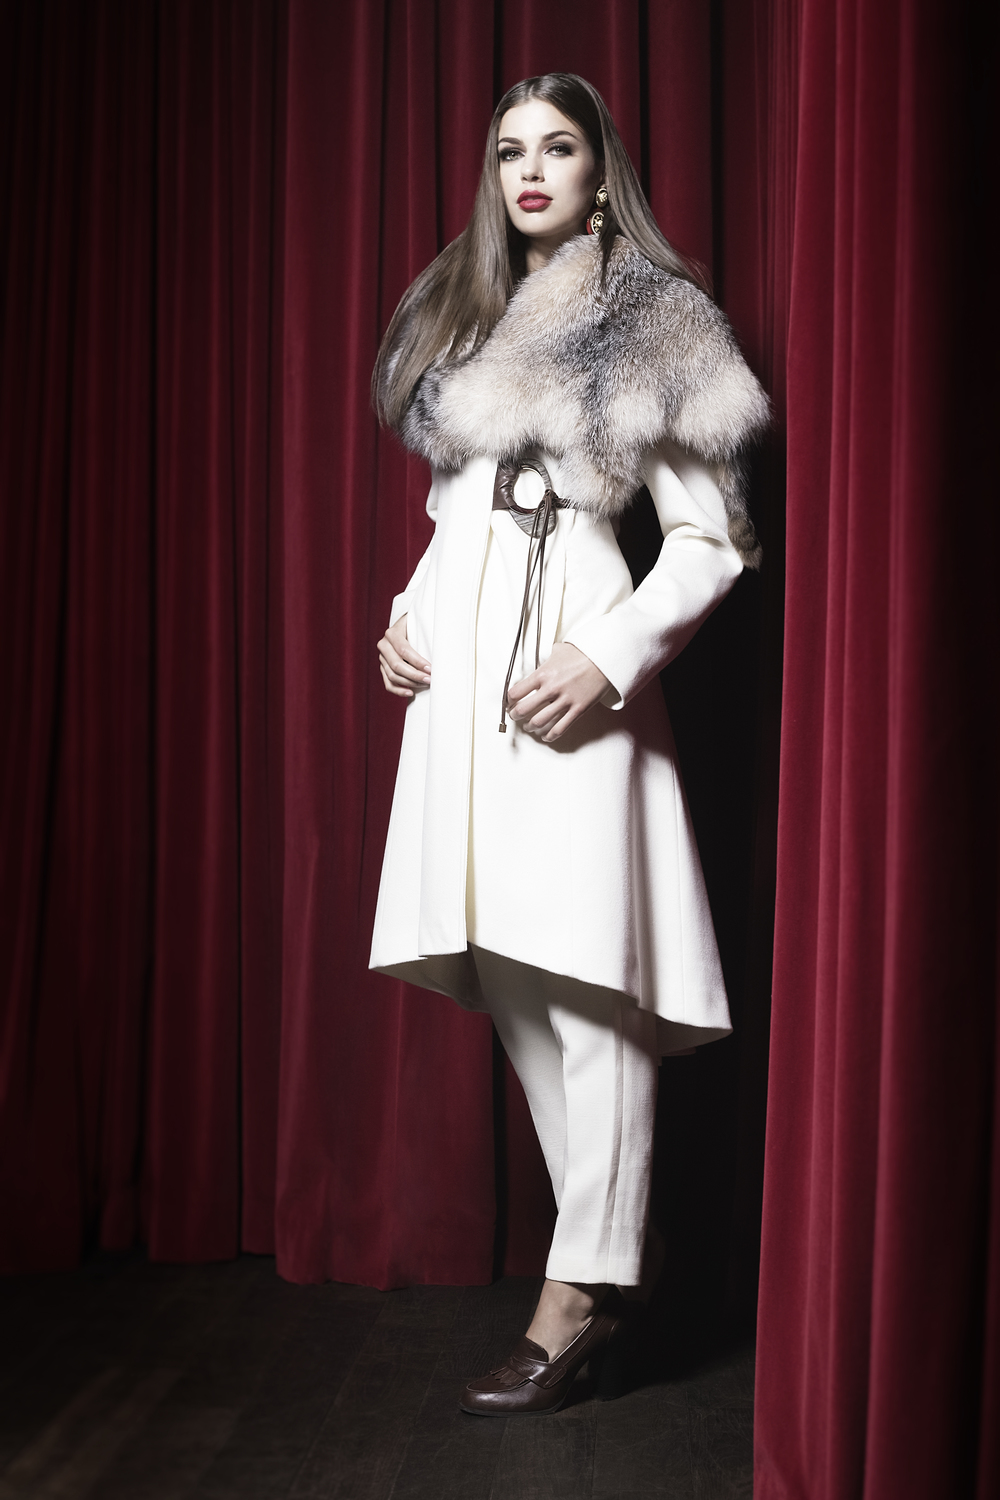 Shearling 2015 Design: Carol Gallacher, Styling: Joanna Plisko, Photography: Mike Lewis, Hair and Makeup: Taca Ozawa